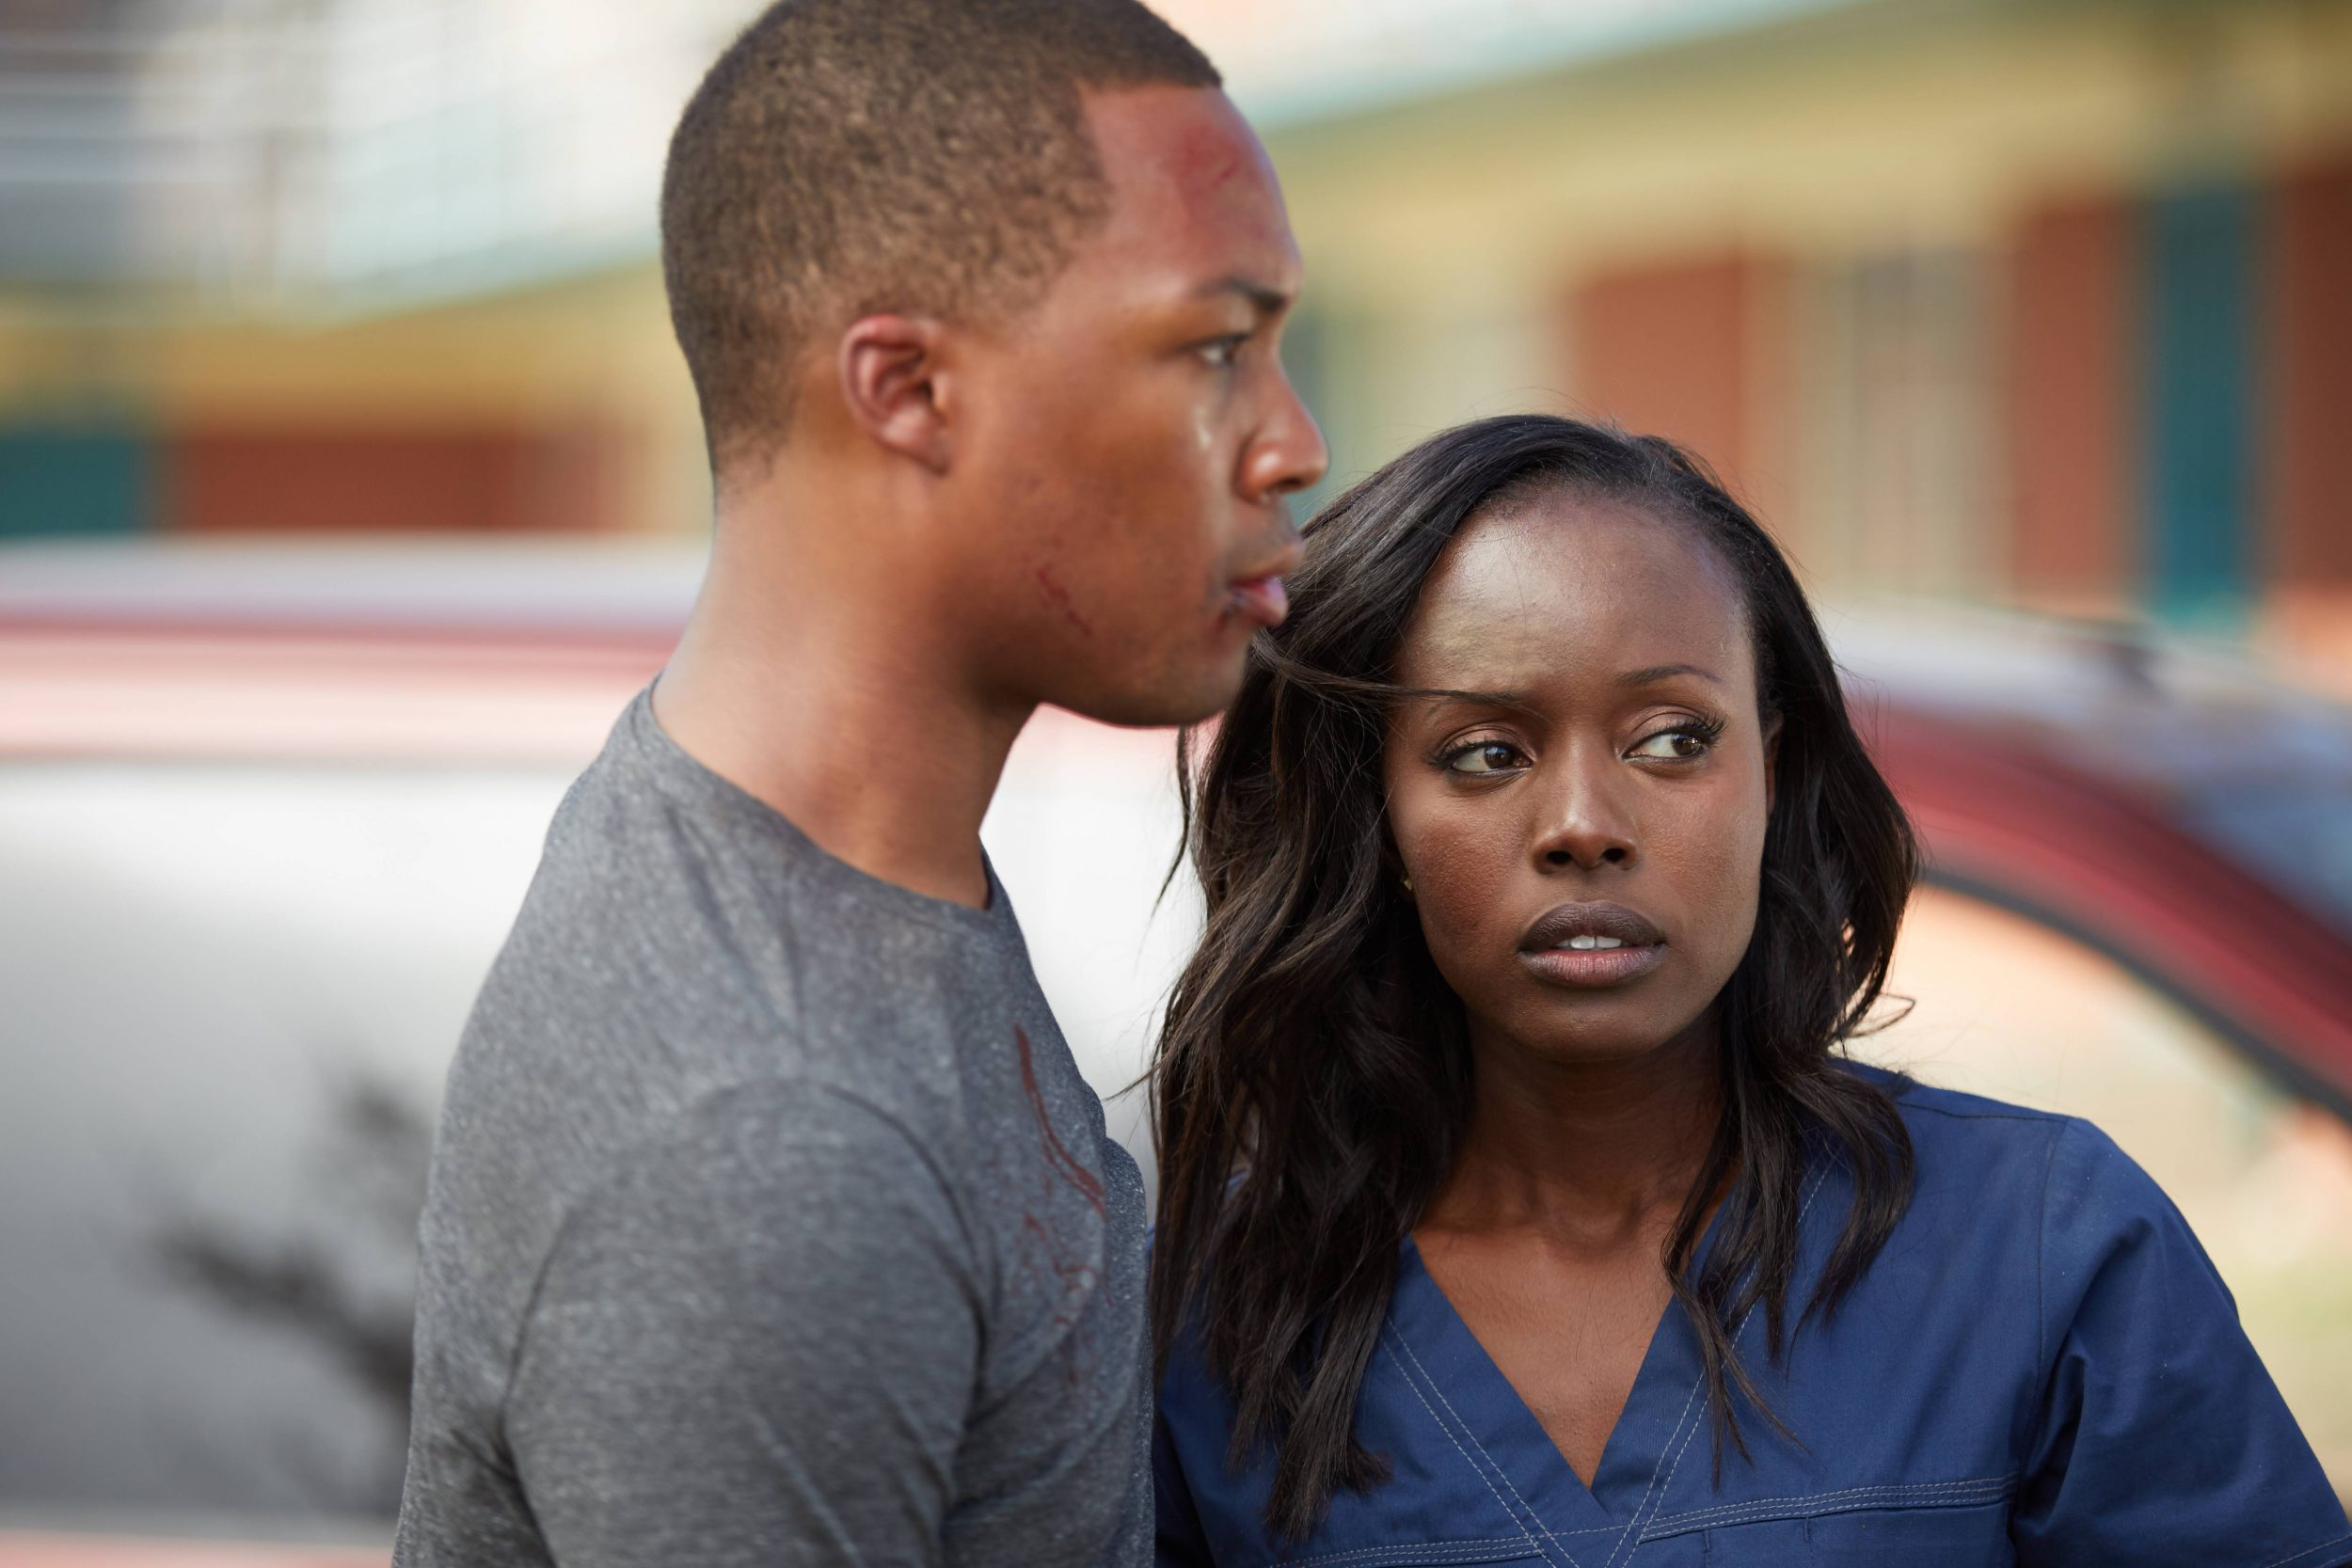 """24: LEGACY: L-R: Corey Hawkins and Anna Diop. 24: LEGACY begins its two-night premiere event following """"SUPERBOWL LI"""" on Sunday, Feb. 5, and will continue Monday, Feb. 6 on FOX. ©2016 Fox Broadcasting Co. Cr: John P Fleenor/FOX"""